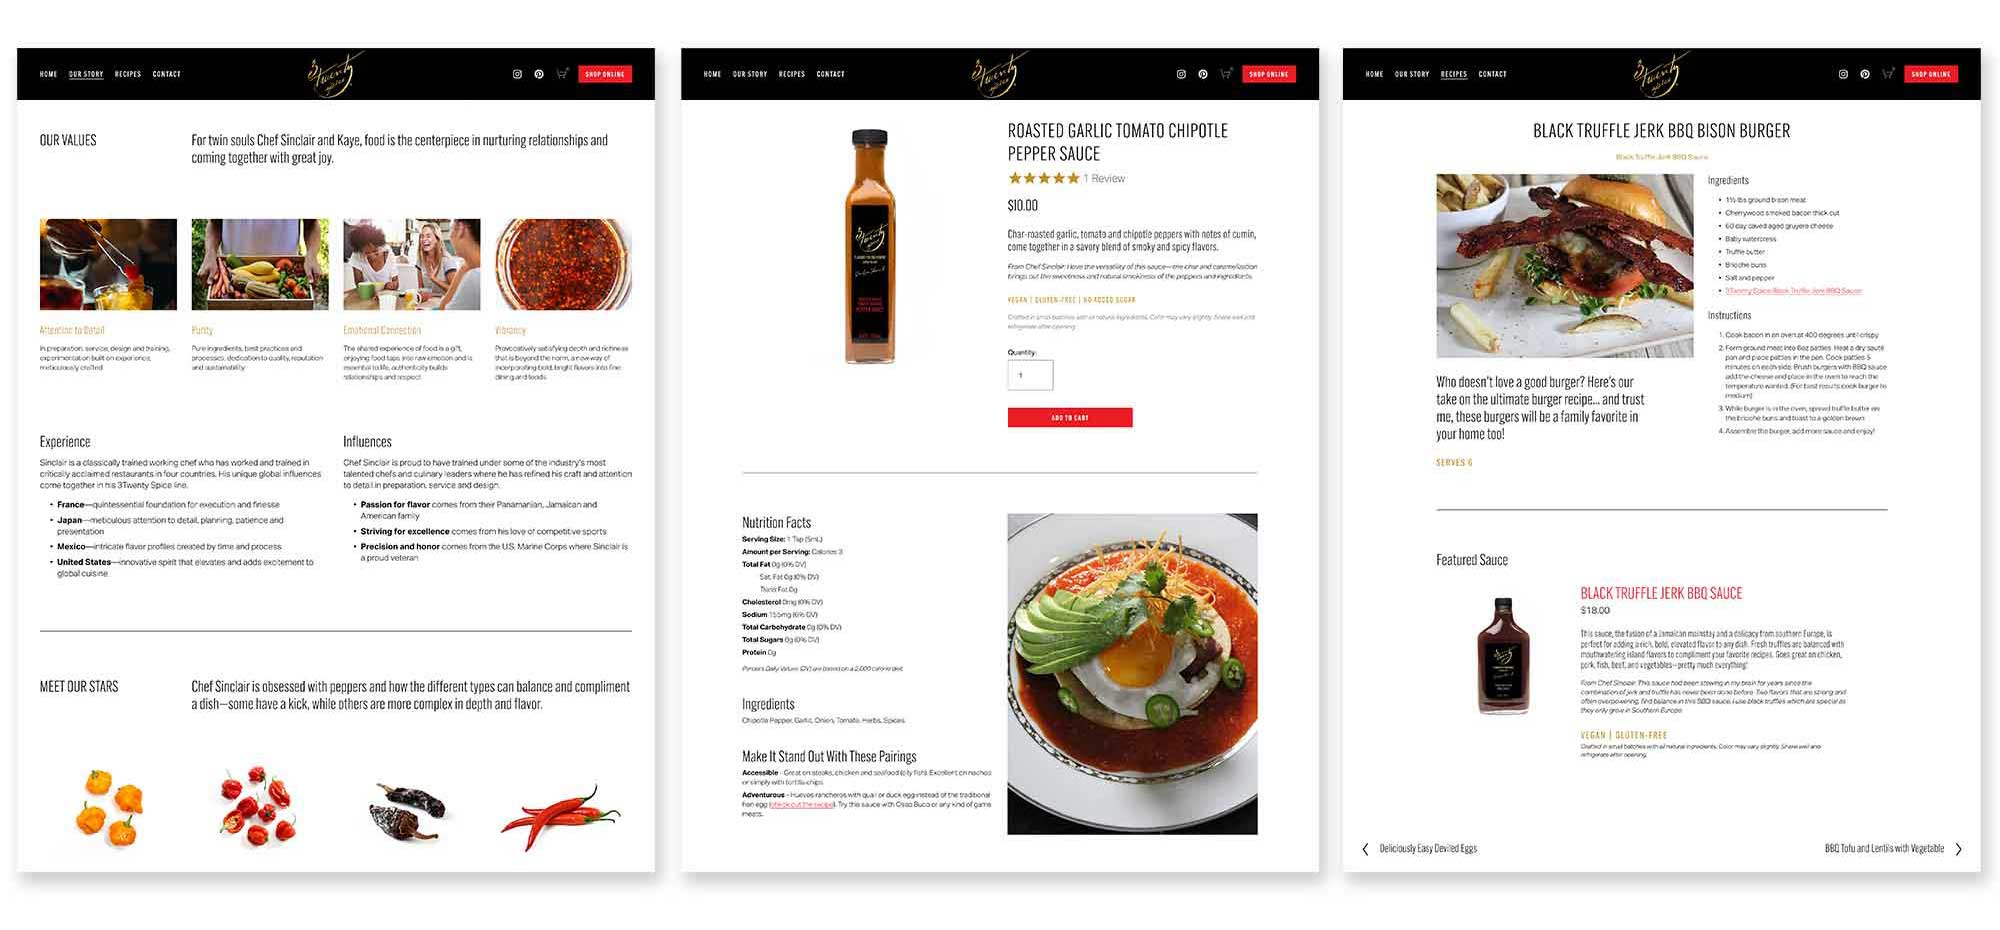 Our approach was to create a site that is visually engaging and content rich, where visitors can easily find the information they are looking for—from flavor profiles and pairings to reviews and recipes.